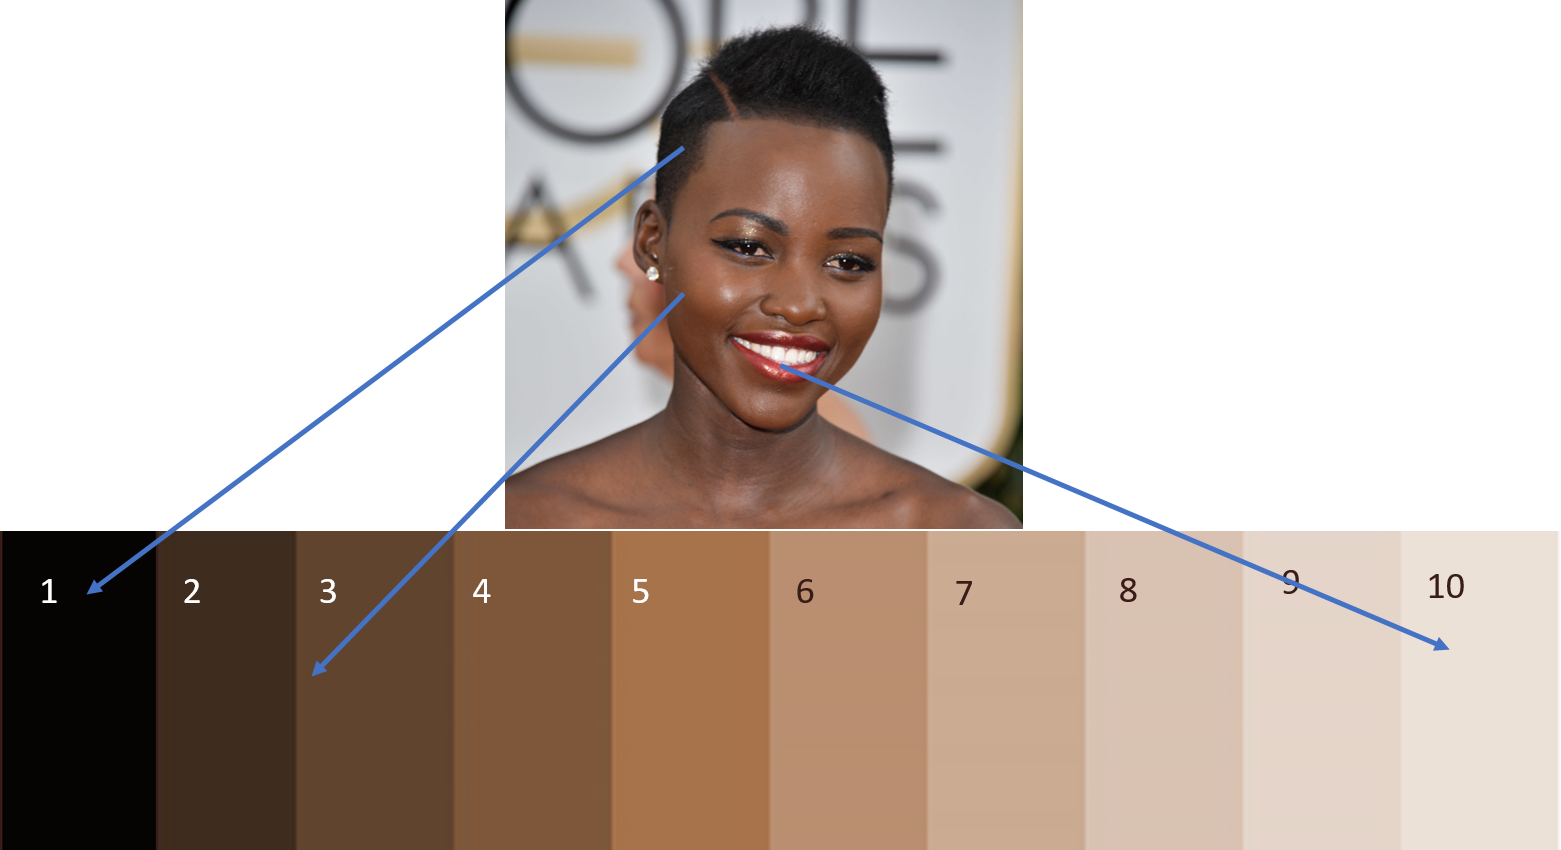 Understanding value, colour contrast and value contrast with darker skin tones